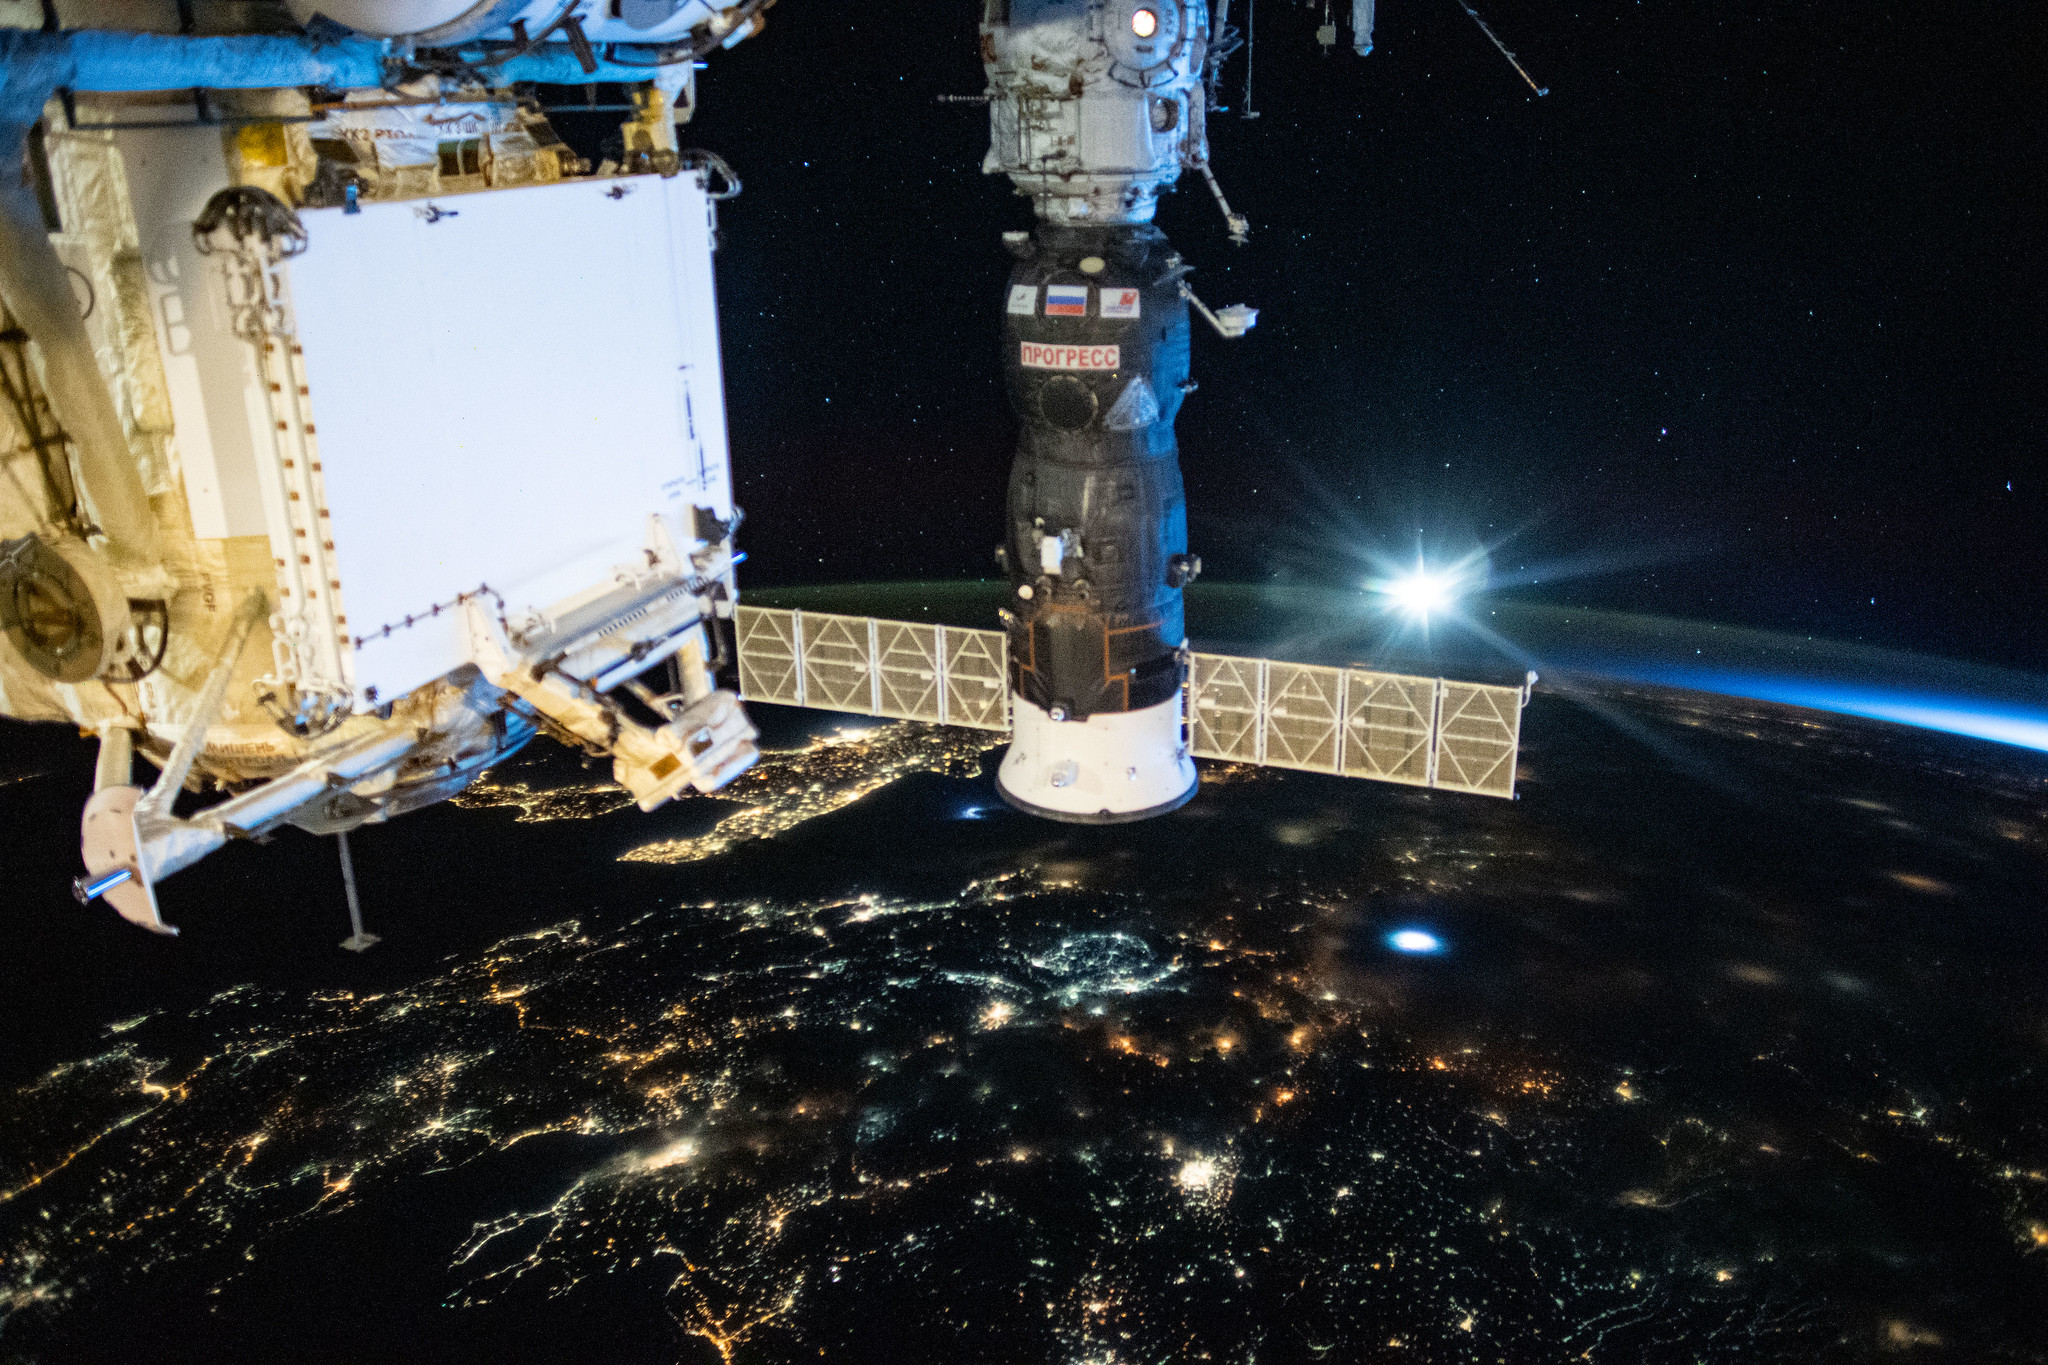 Russia's Progress 76 resupply ship is pictured docked to the International Space Station's Pirs docking compartment. Below the orbiting lab are the city lights of southeastern Europe.